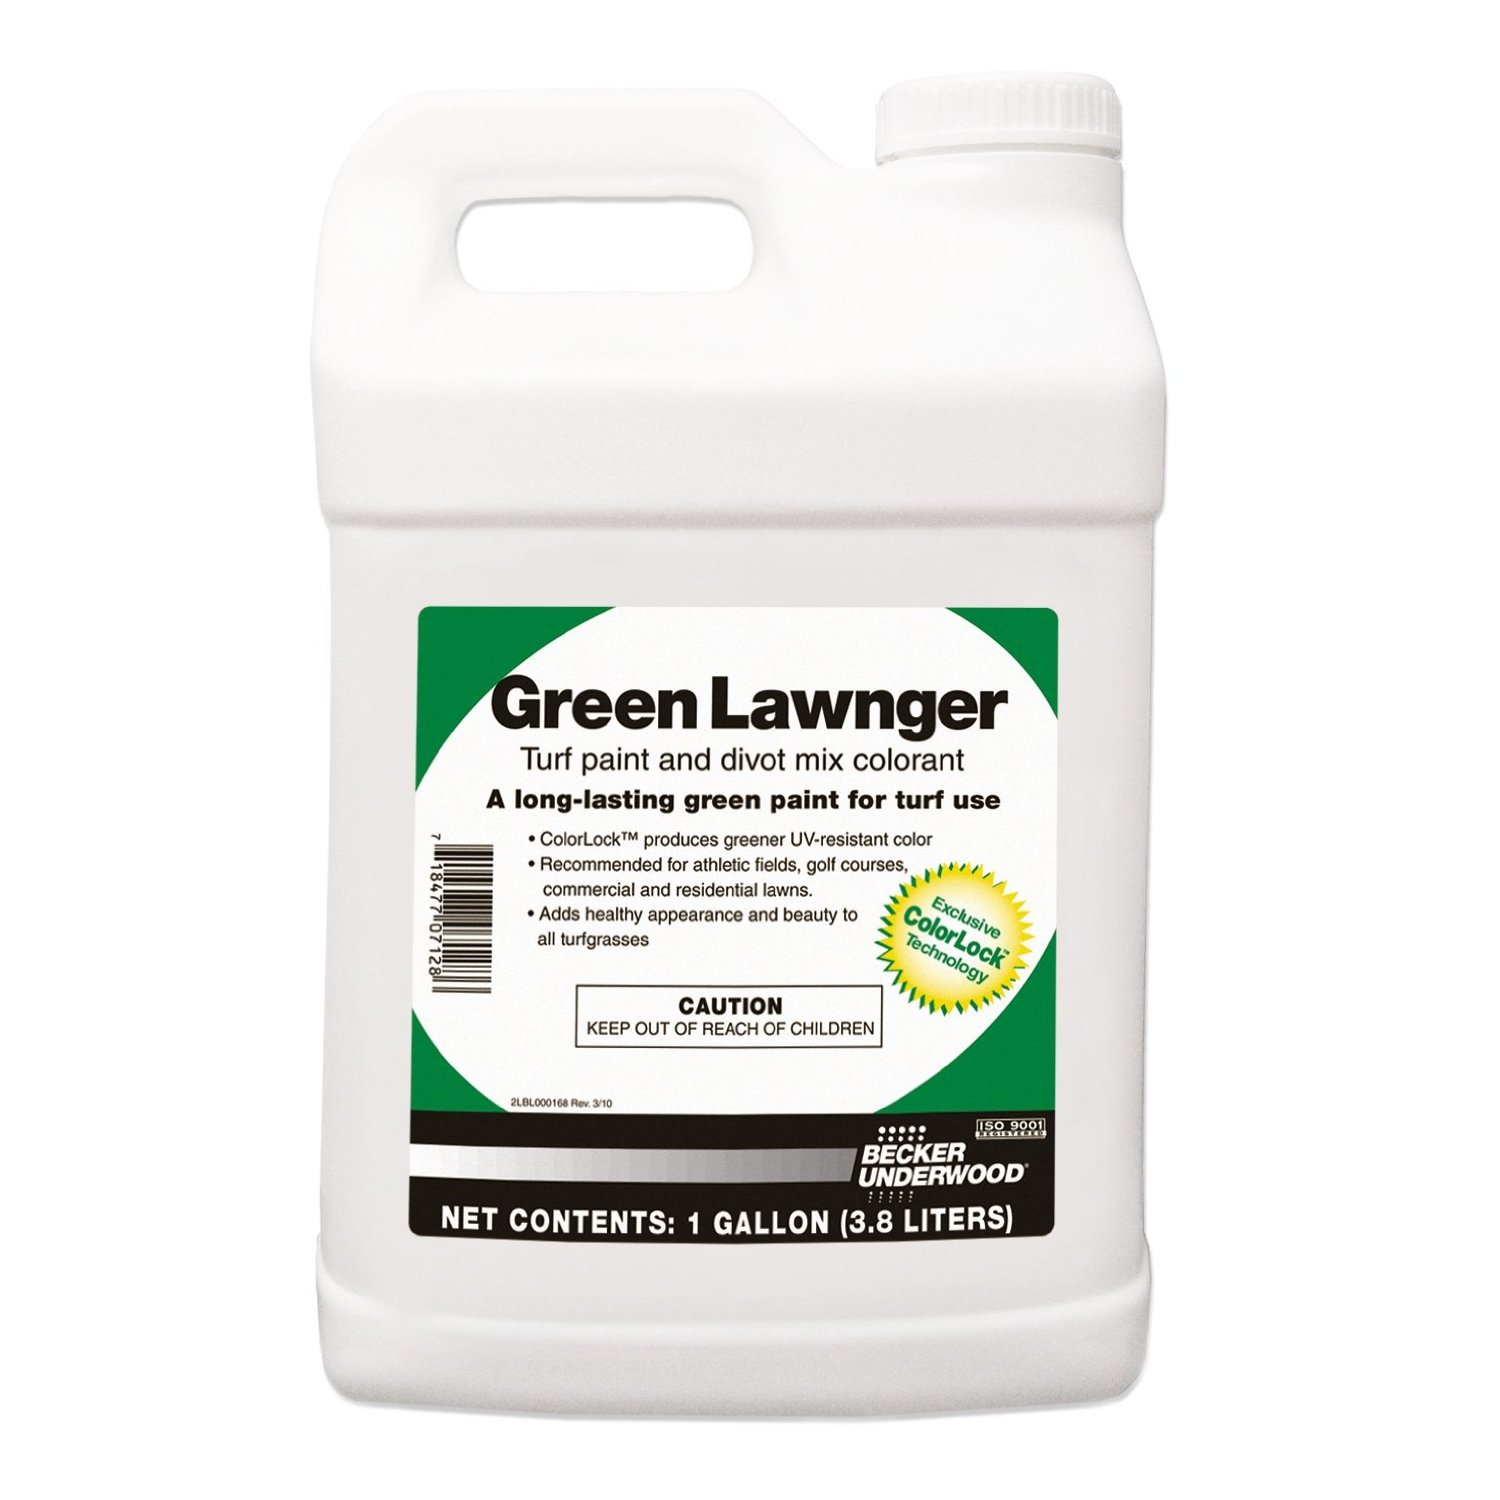 Green Lawnger Turf Paint and Divot Mix Colorant, 1 Gallon by ITS Supply